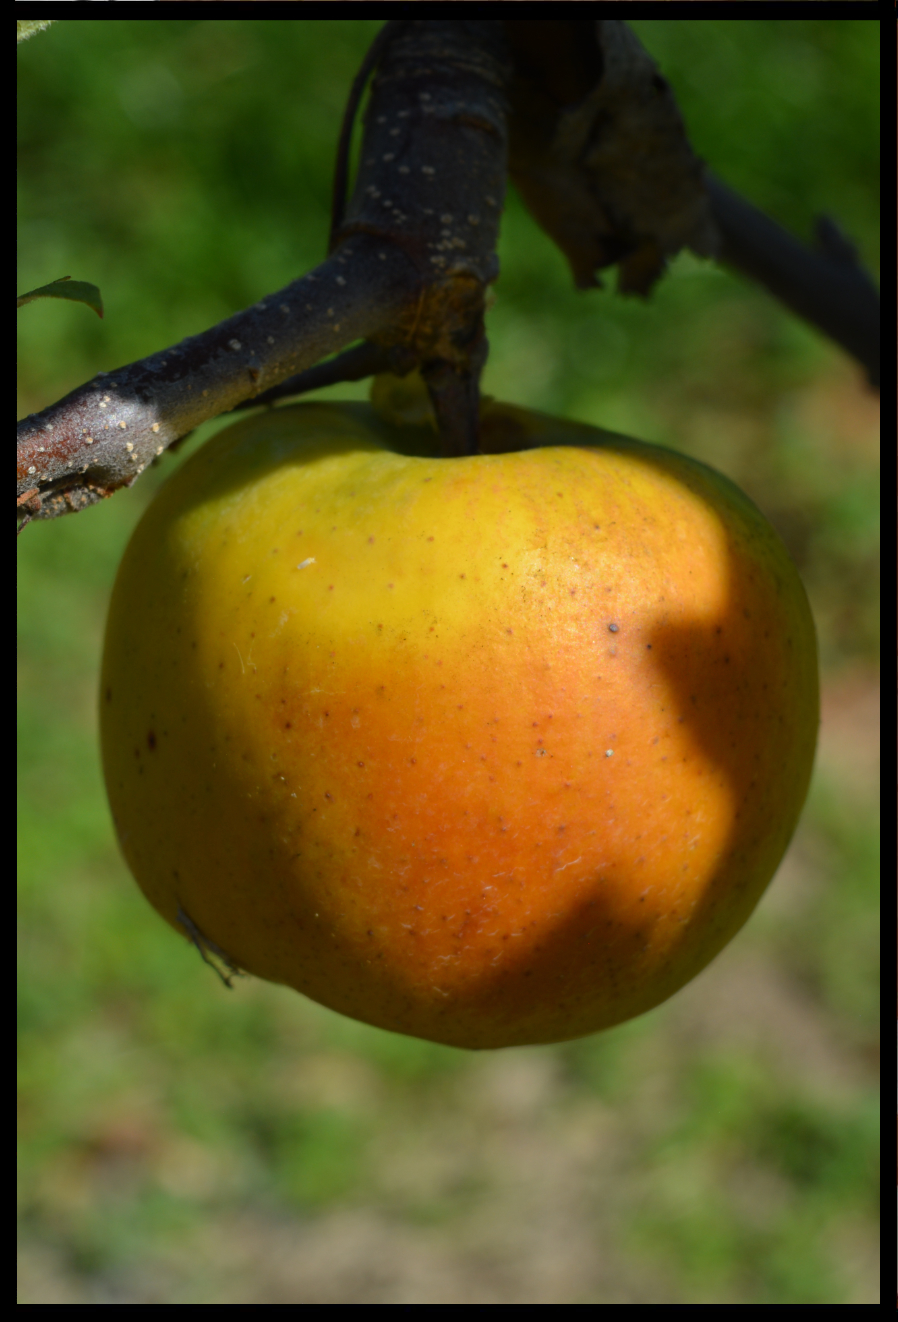 yellow apple with light red blush